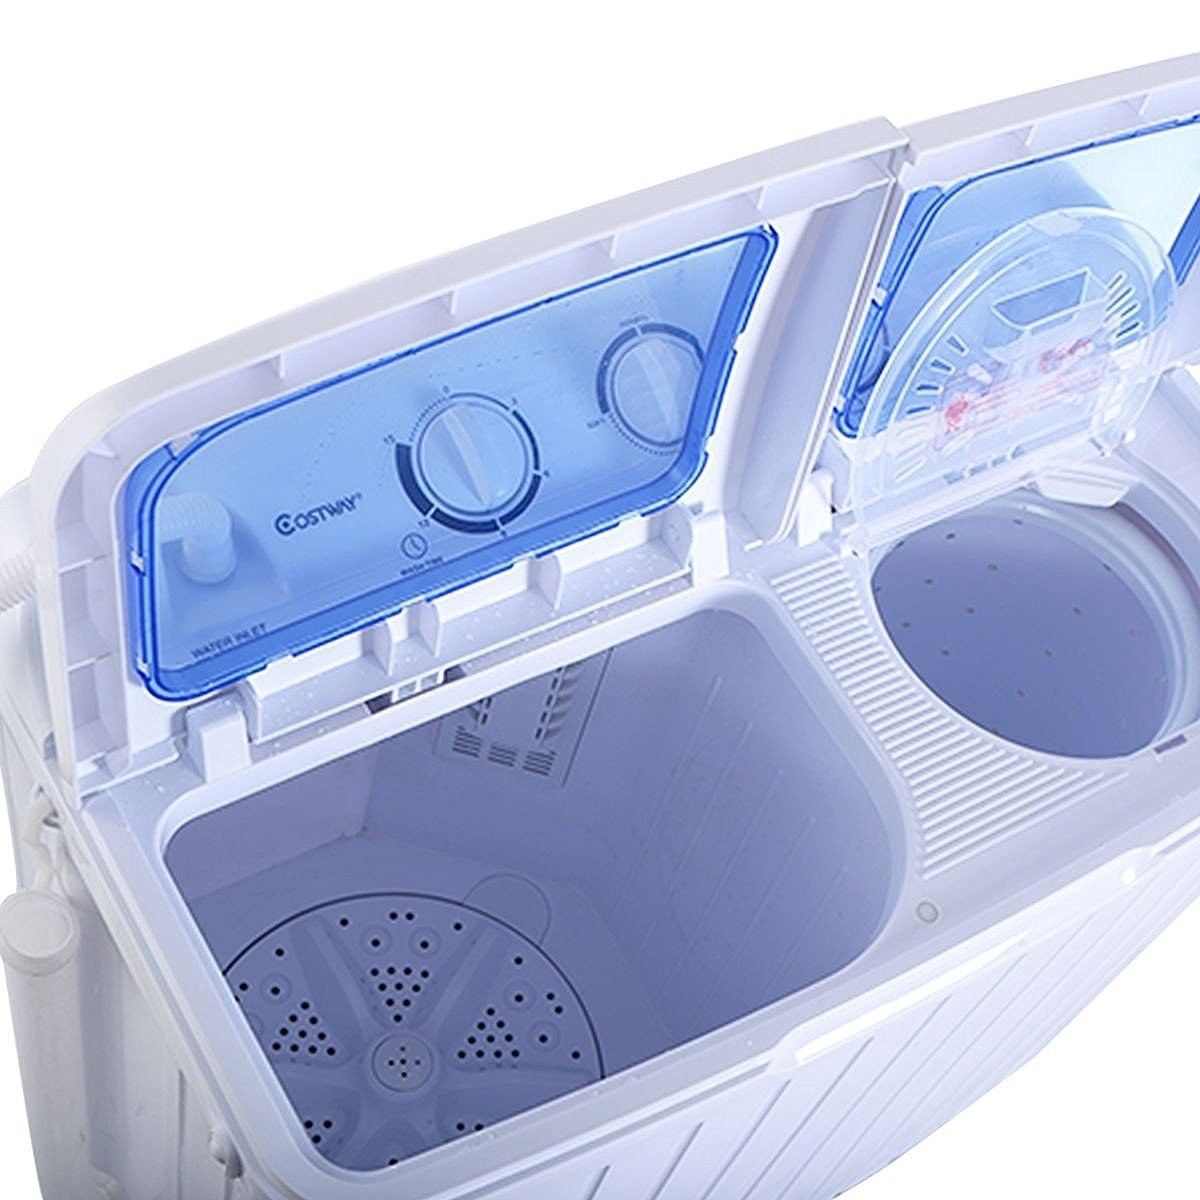 28 Amazing Items To Make Doing Laundry Easier Apartment Washer